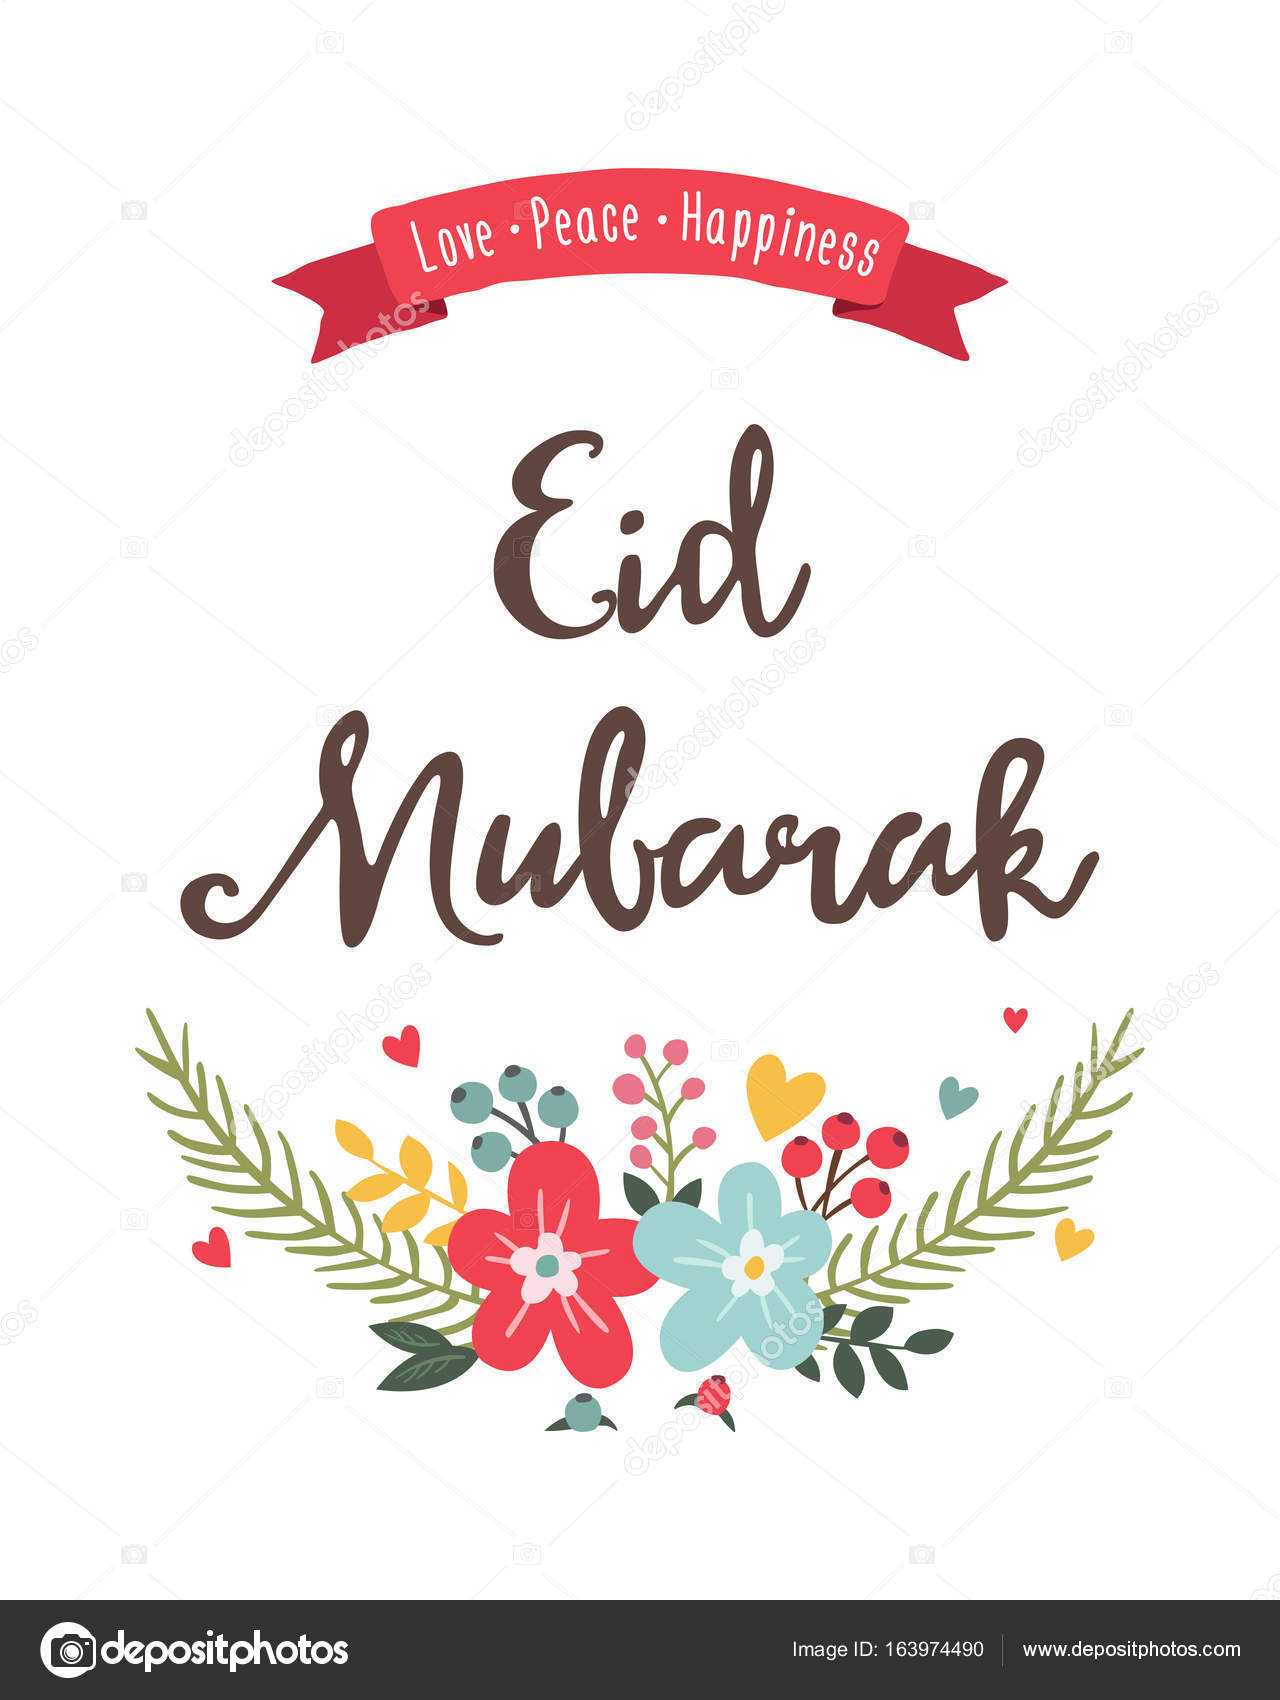 Eid mubarak greeting card stock vector ekler 163974490 colorful vector illustration of eid mubarak greeting card with text and flowers vector by ekler m4hsunfo